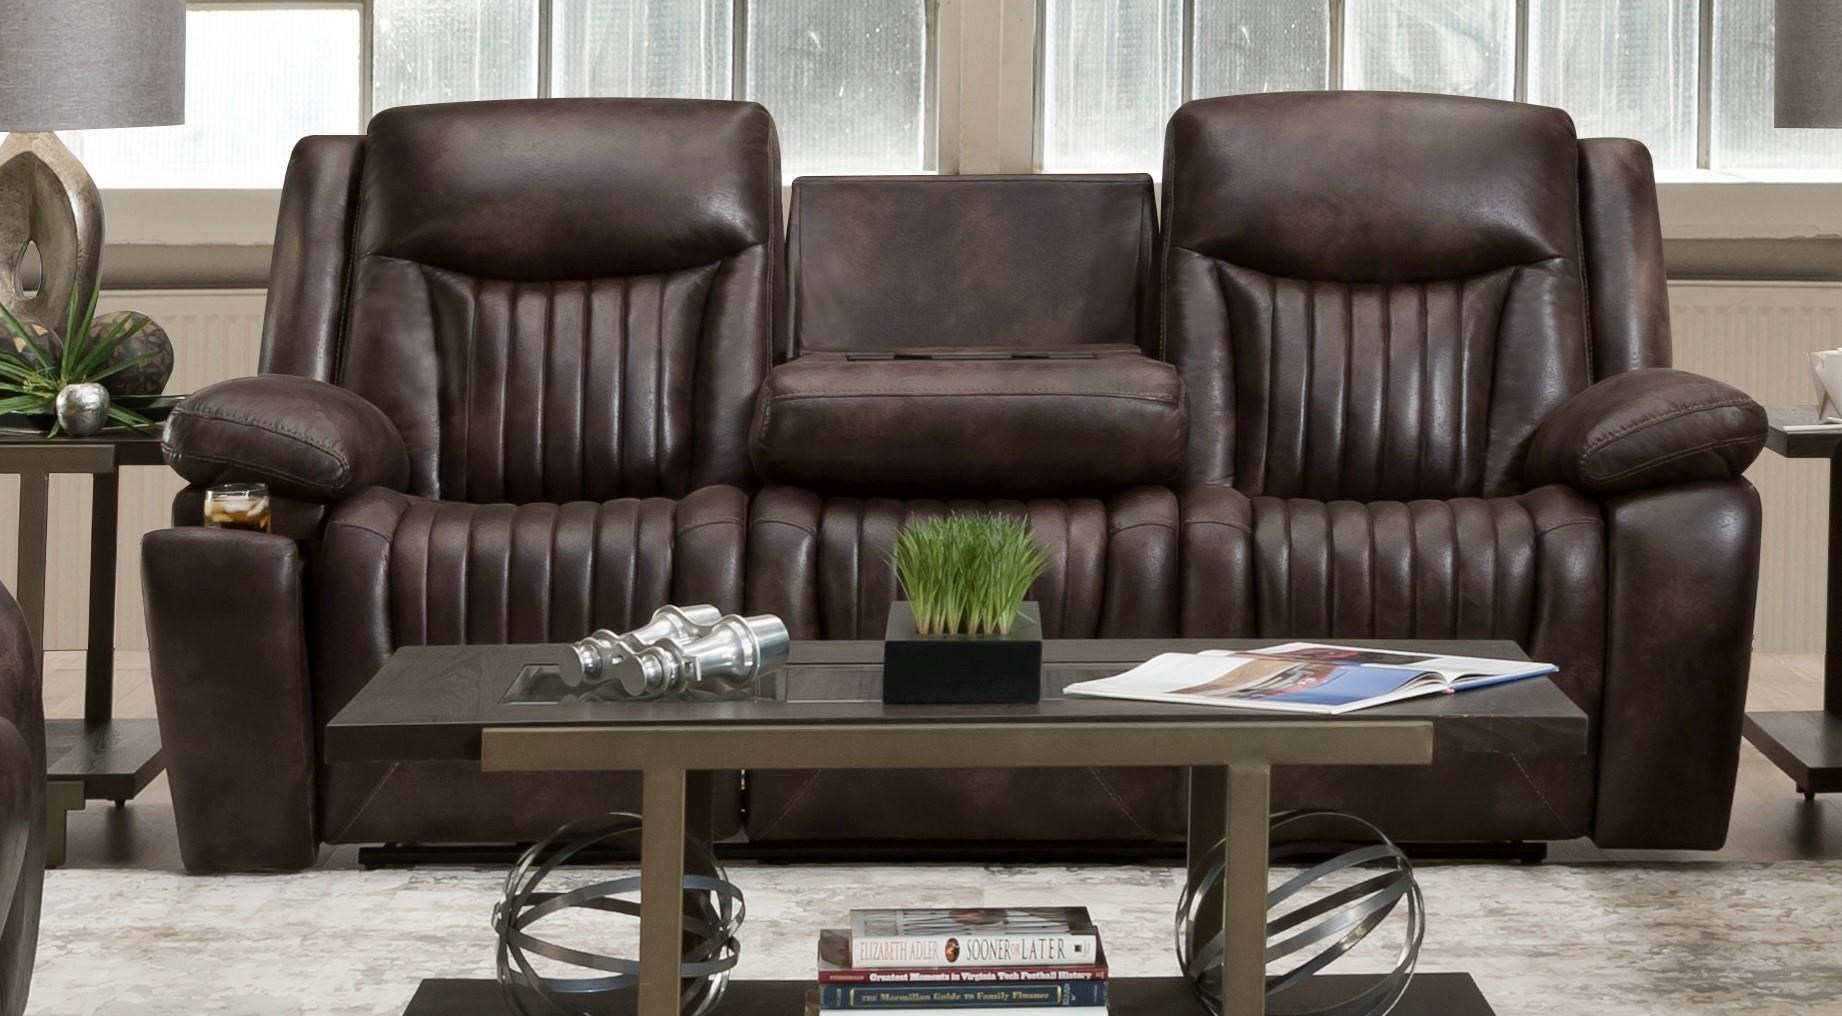 L77701 Leather Power Headrest Sofa with Drop Table by Corinthian at Furniture Fair - North Carolina